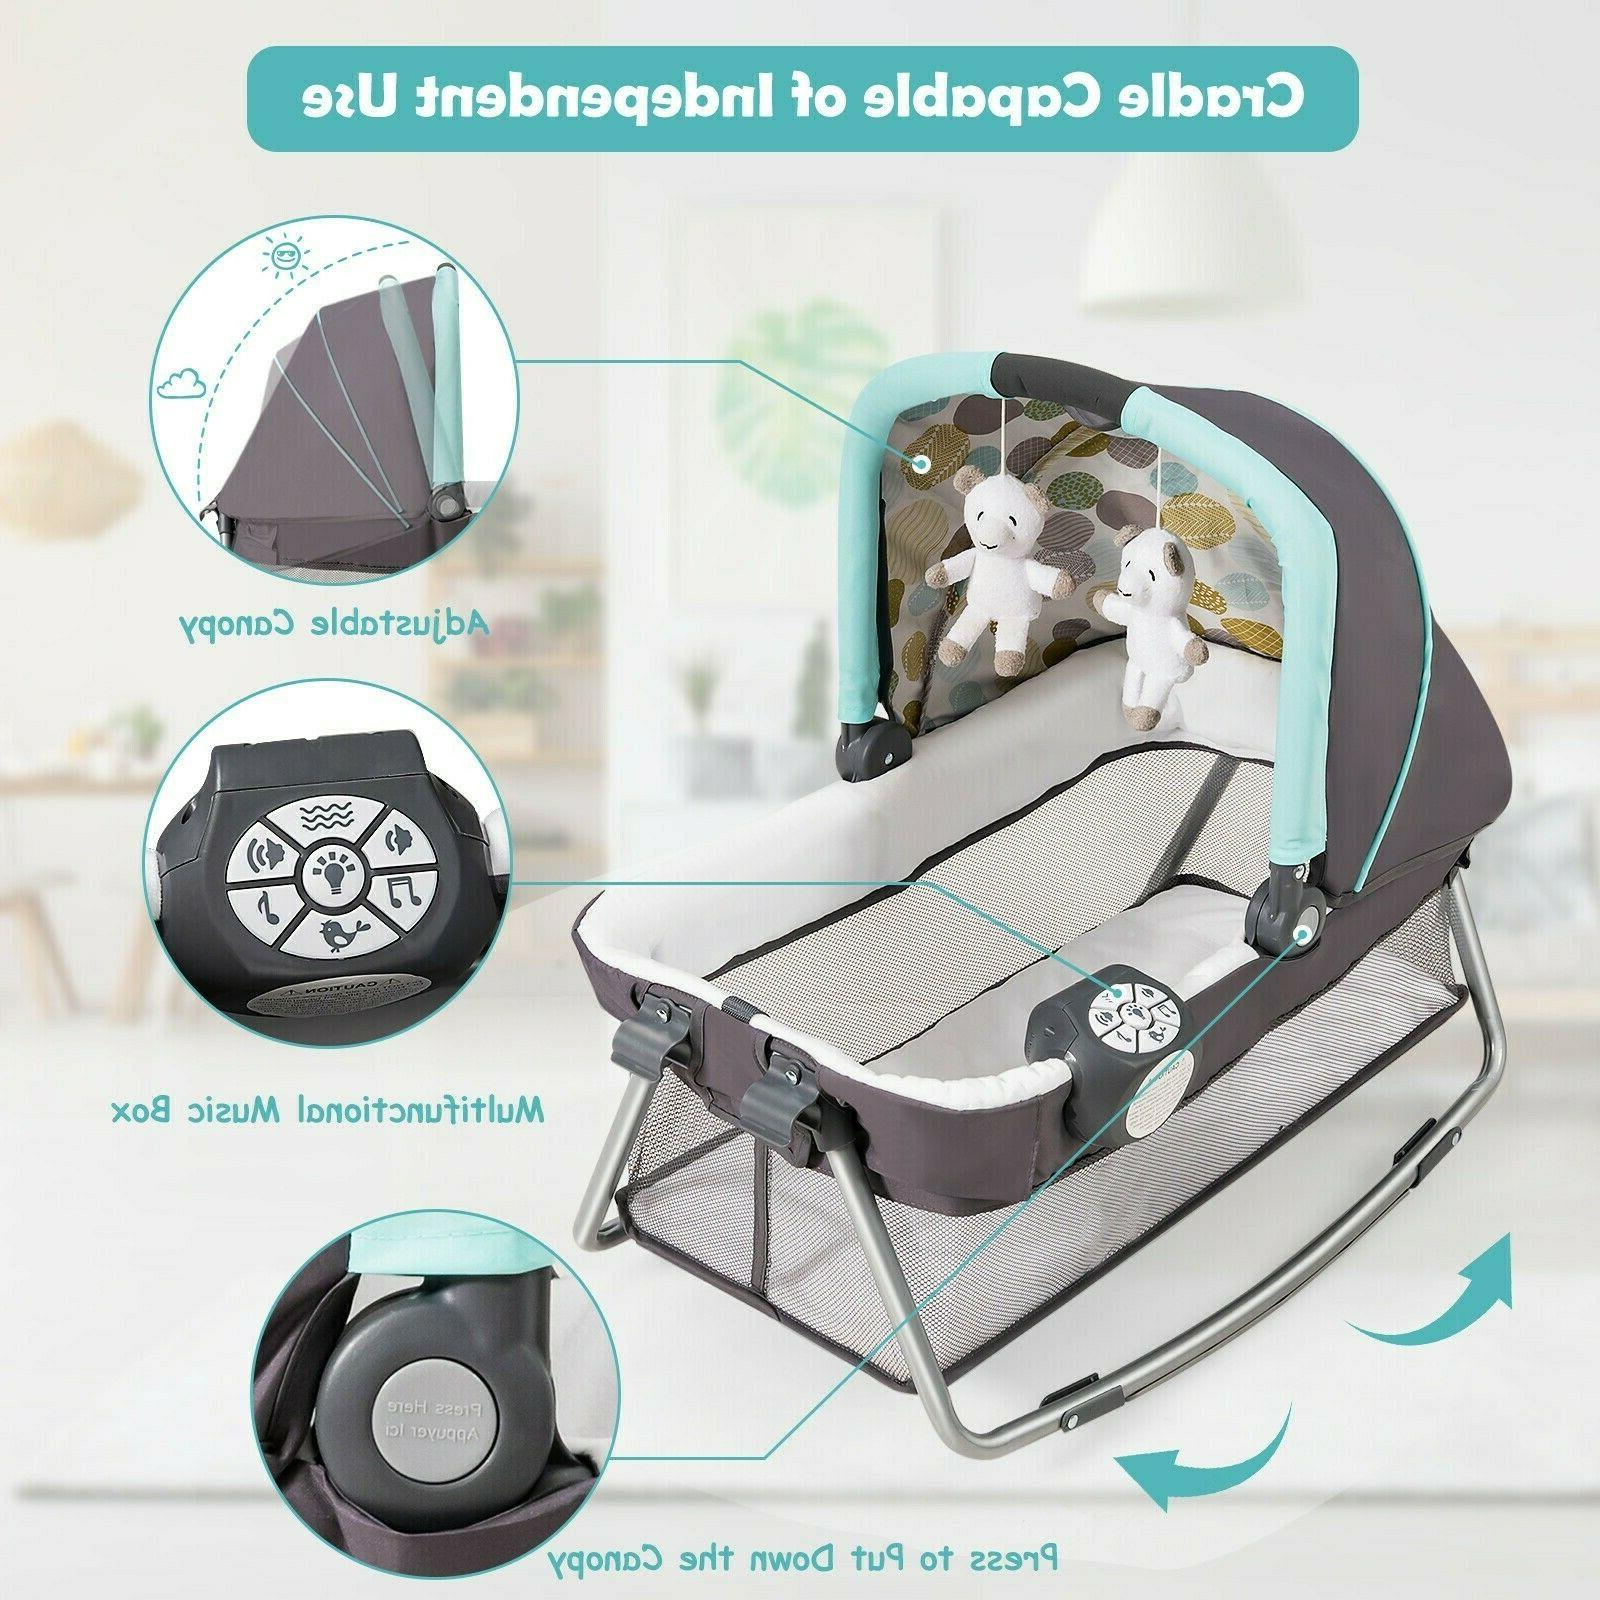 Travel Nursery Play With Bassinet Bed 4in1